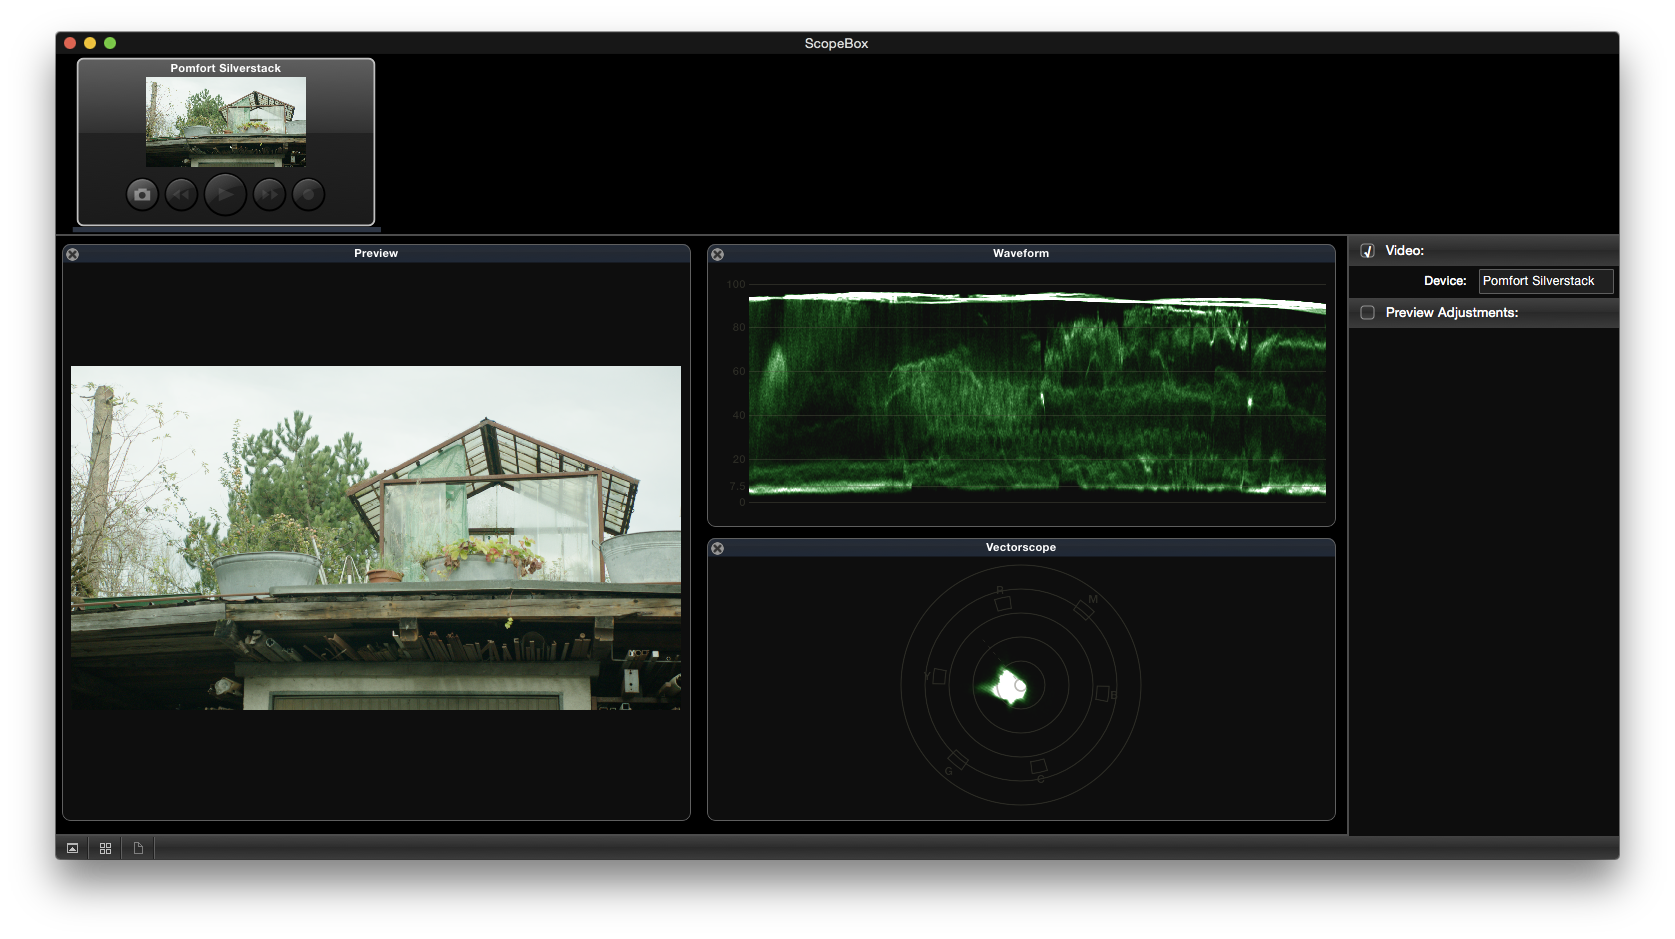 Figure 3: The ScopeBox UI with a preview of the Silverstack clip and scopes.